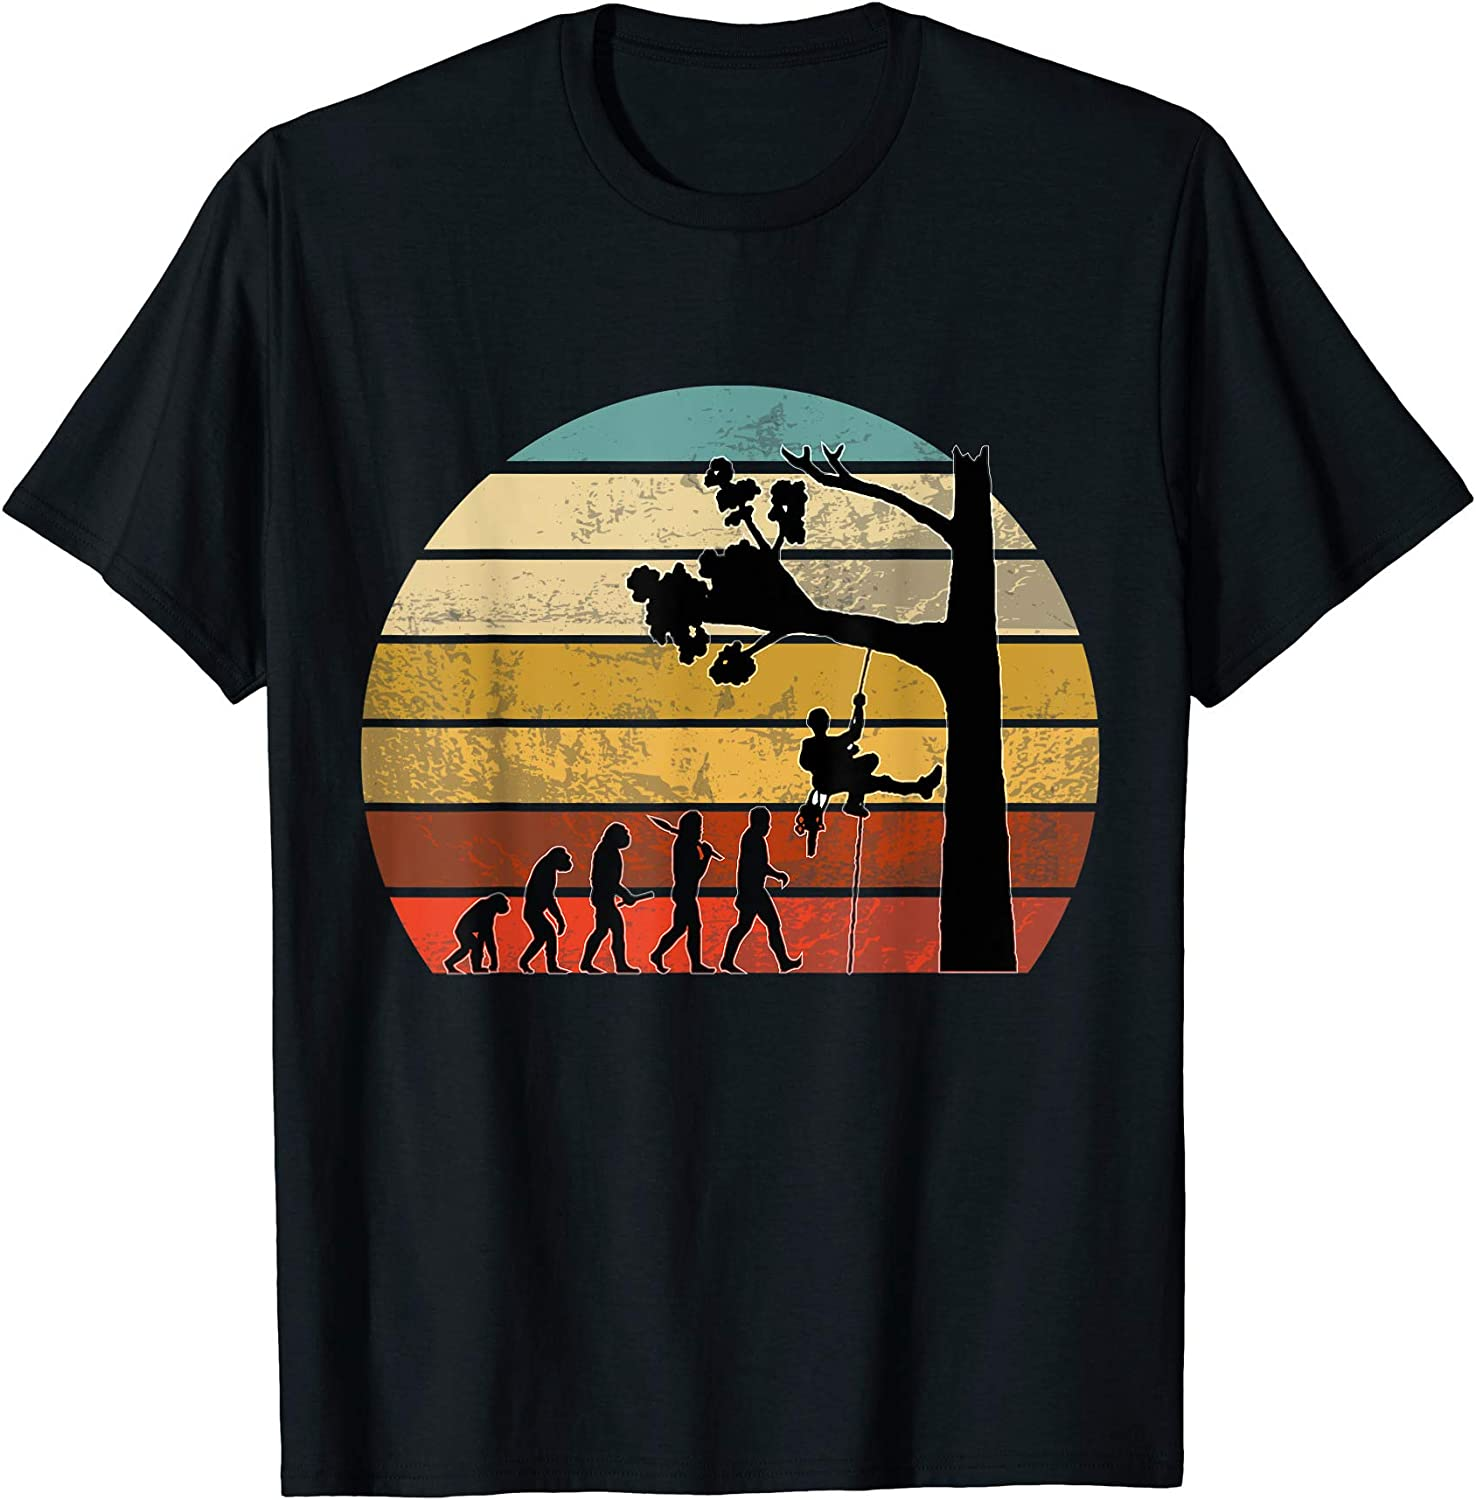 Mens TREE SURGEON EVOLUTION T Shirt Tshirt Gift Clothing